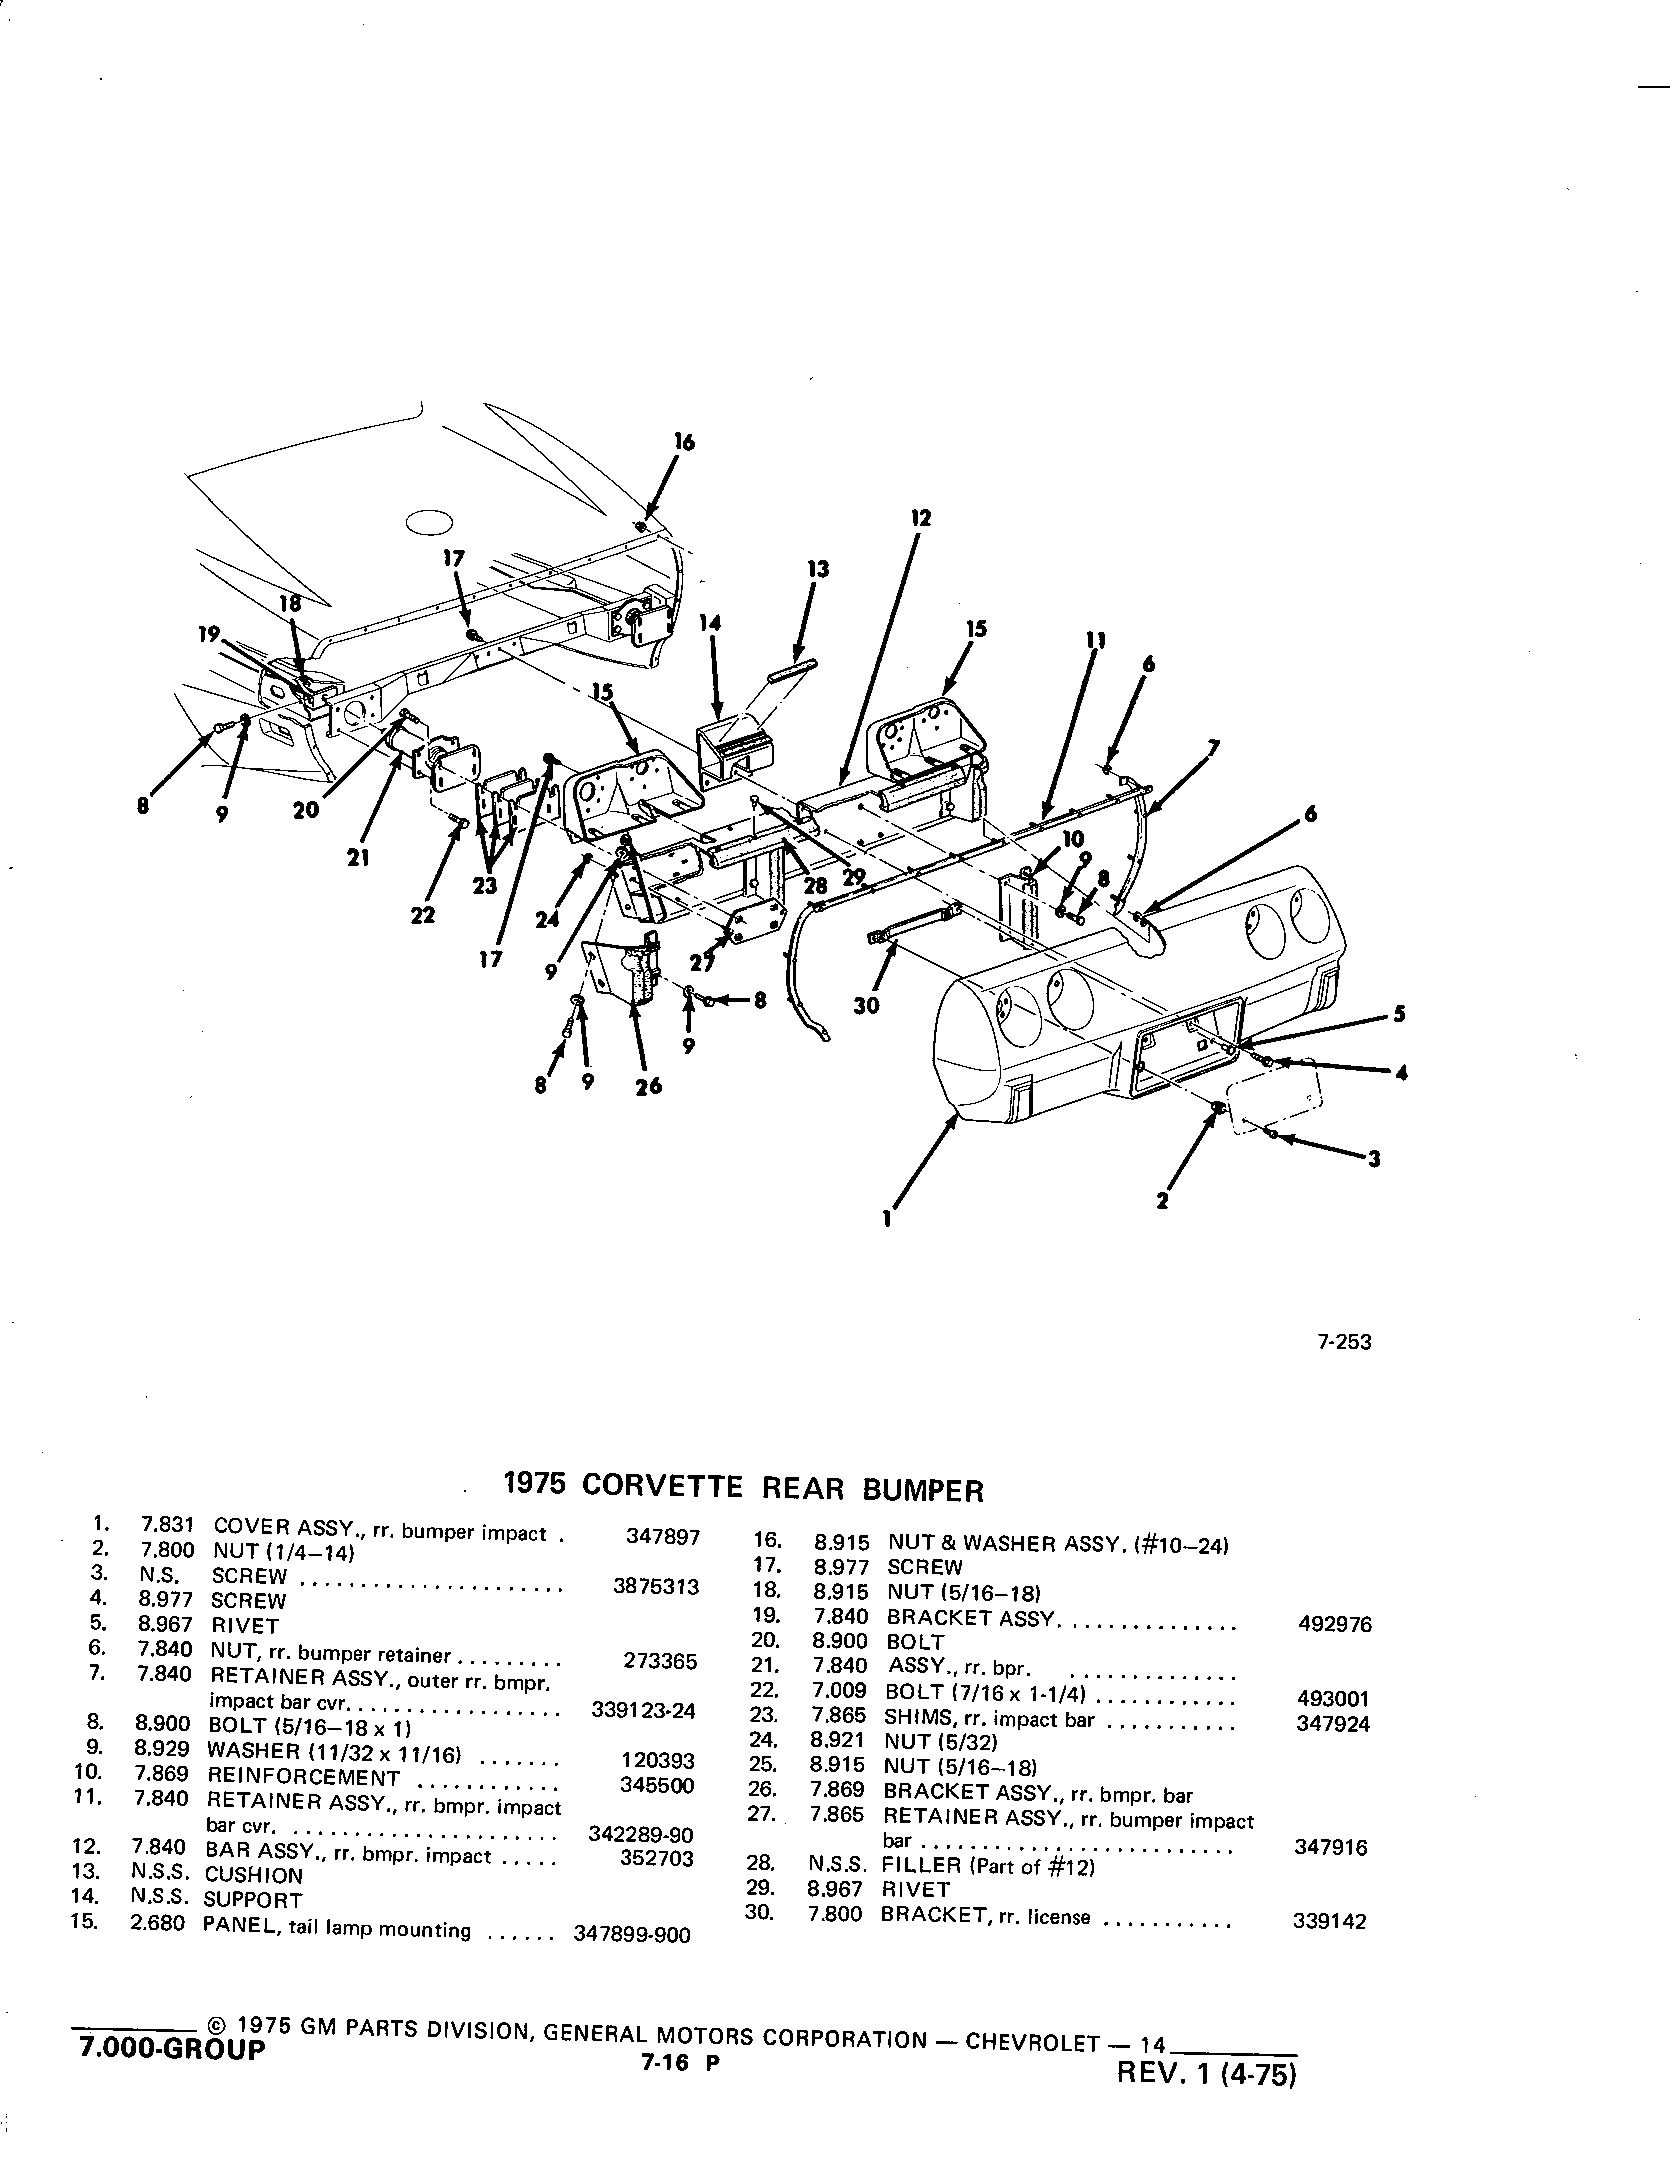 69 Chevelle Heater Diagram besides 1954 Chevrolet Wiring Diagram For Car moreover 143 Wiring Diagram E83w Prior 1945 also 1953 1973 20Corvette 20Parts 20and 20Accessories Page 062 further Flathead drawings electrical. on 1953 chevy car